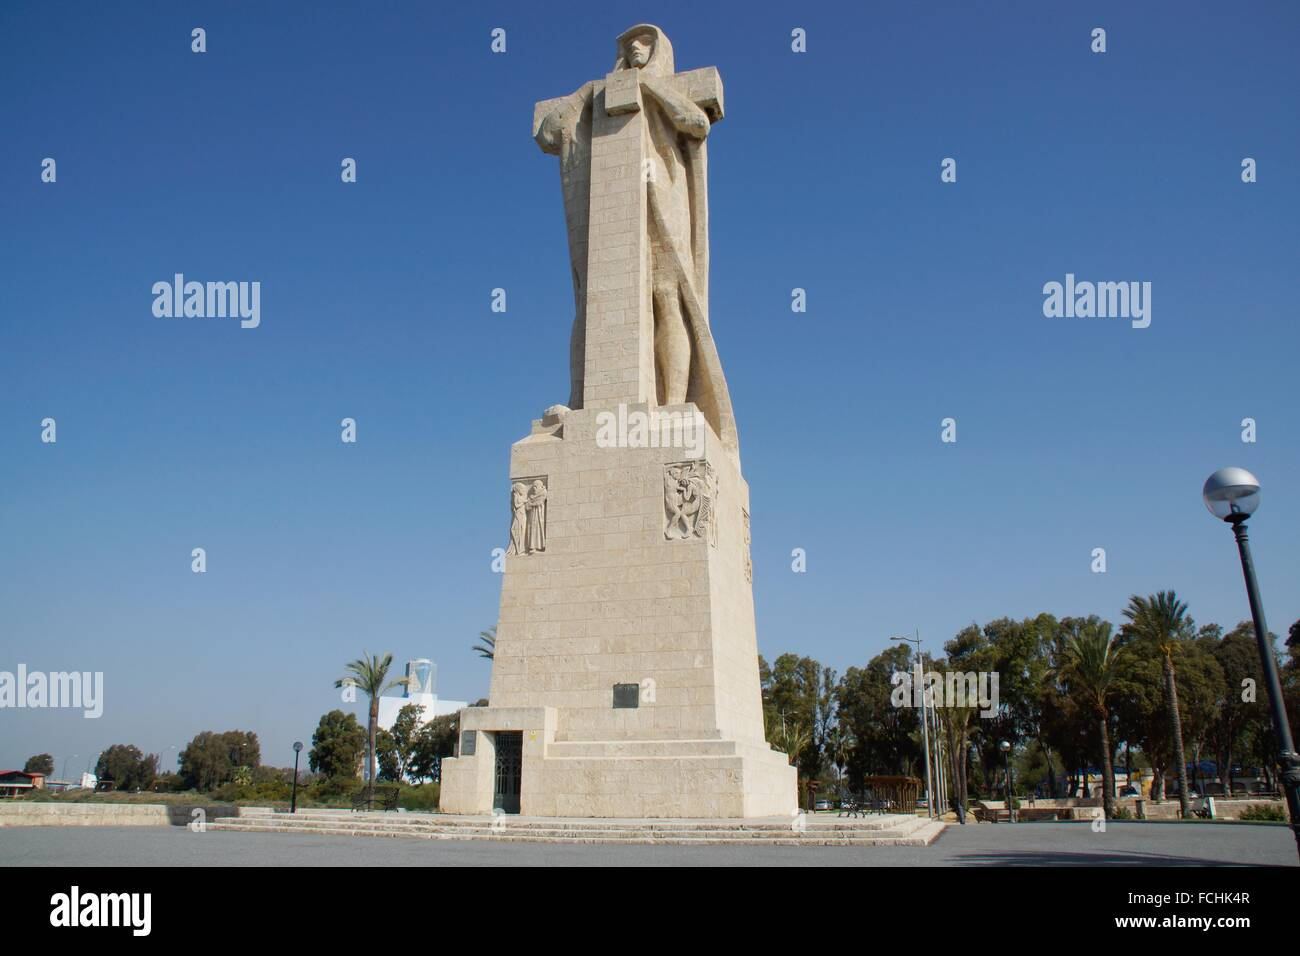 Huelva (Spain). Monument to the Faith Discoverer. (It was donated to Spain by the United States in 1929). - Stock Image